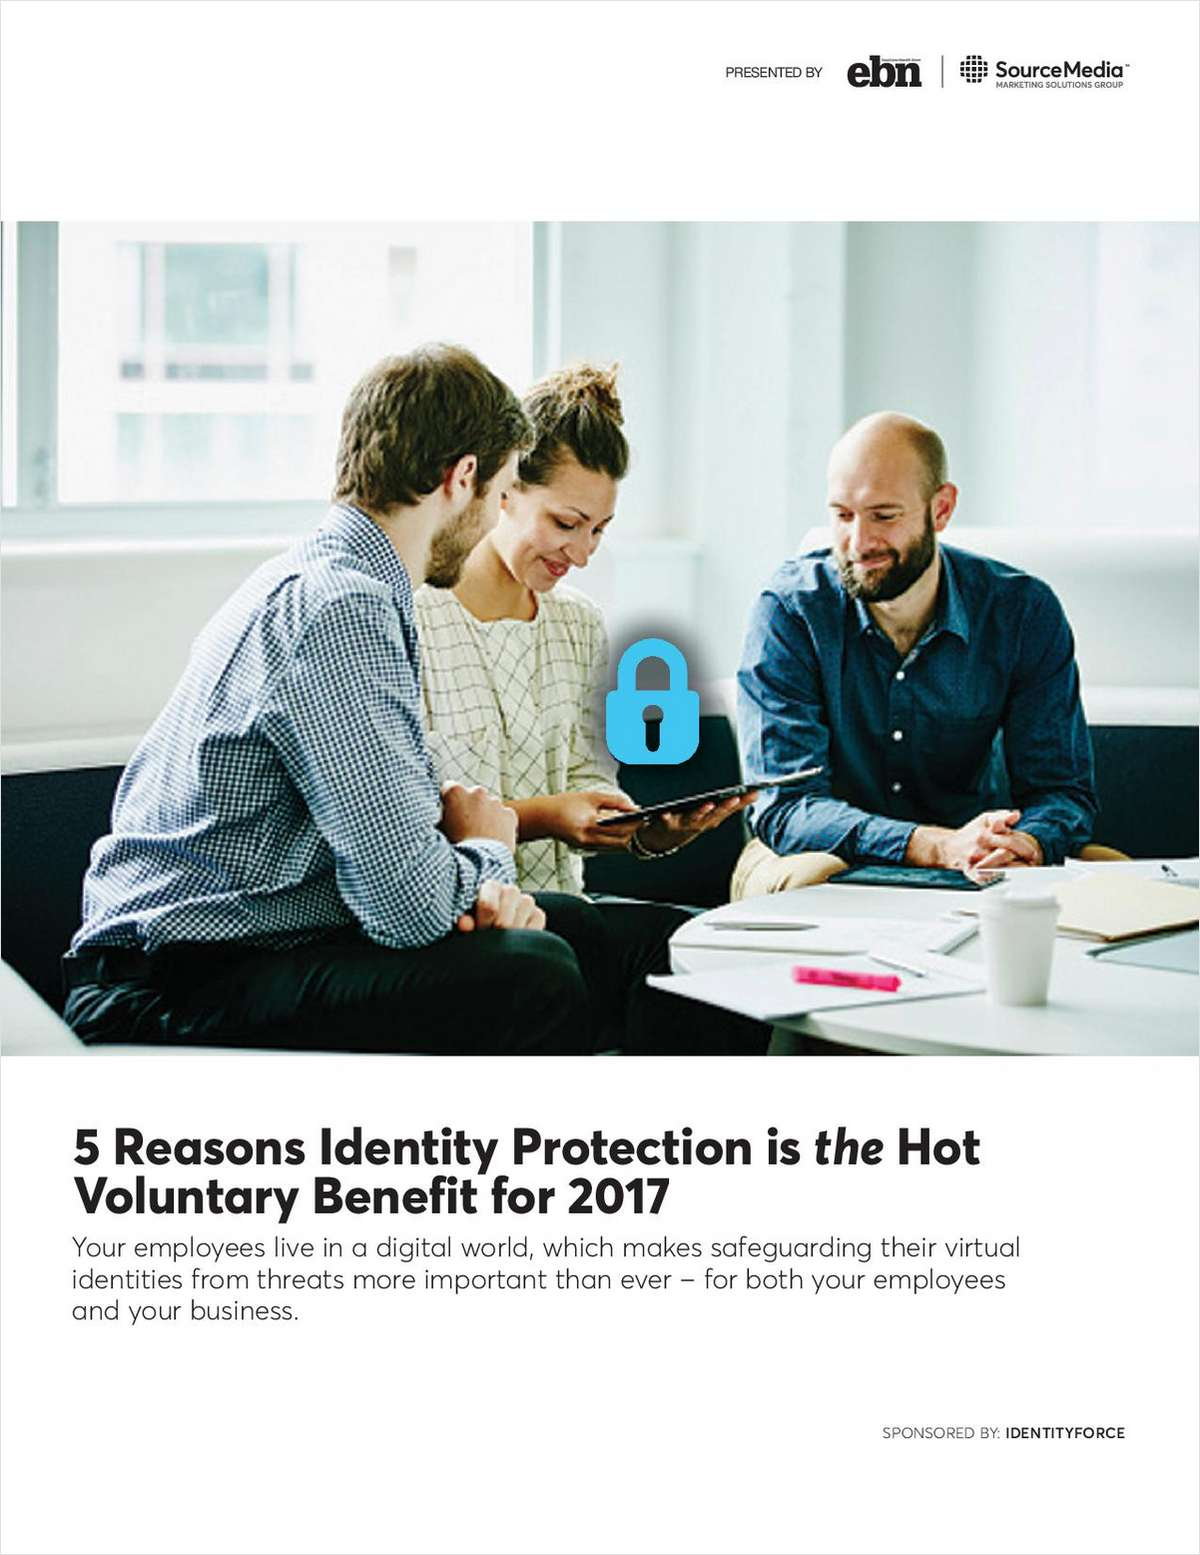 5 Reasons Identity Protection is the Hot Voluntary Benefit for 2017